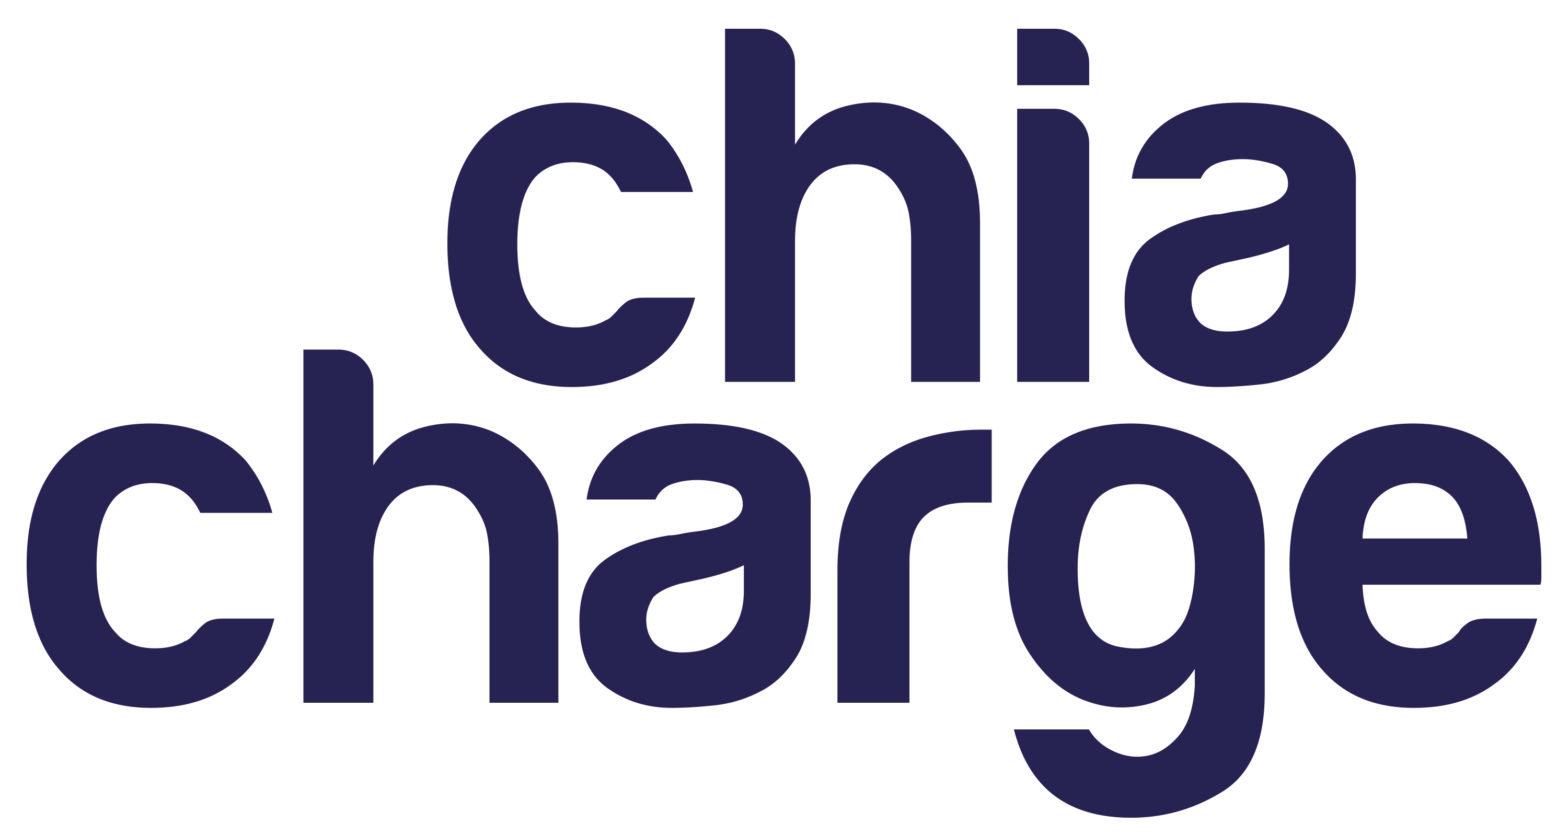 Charged by Chia!